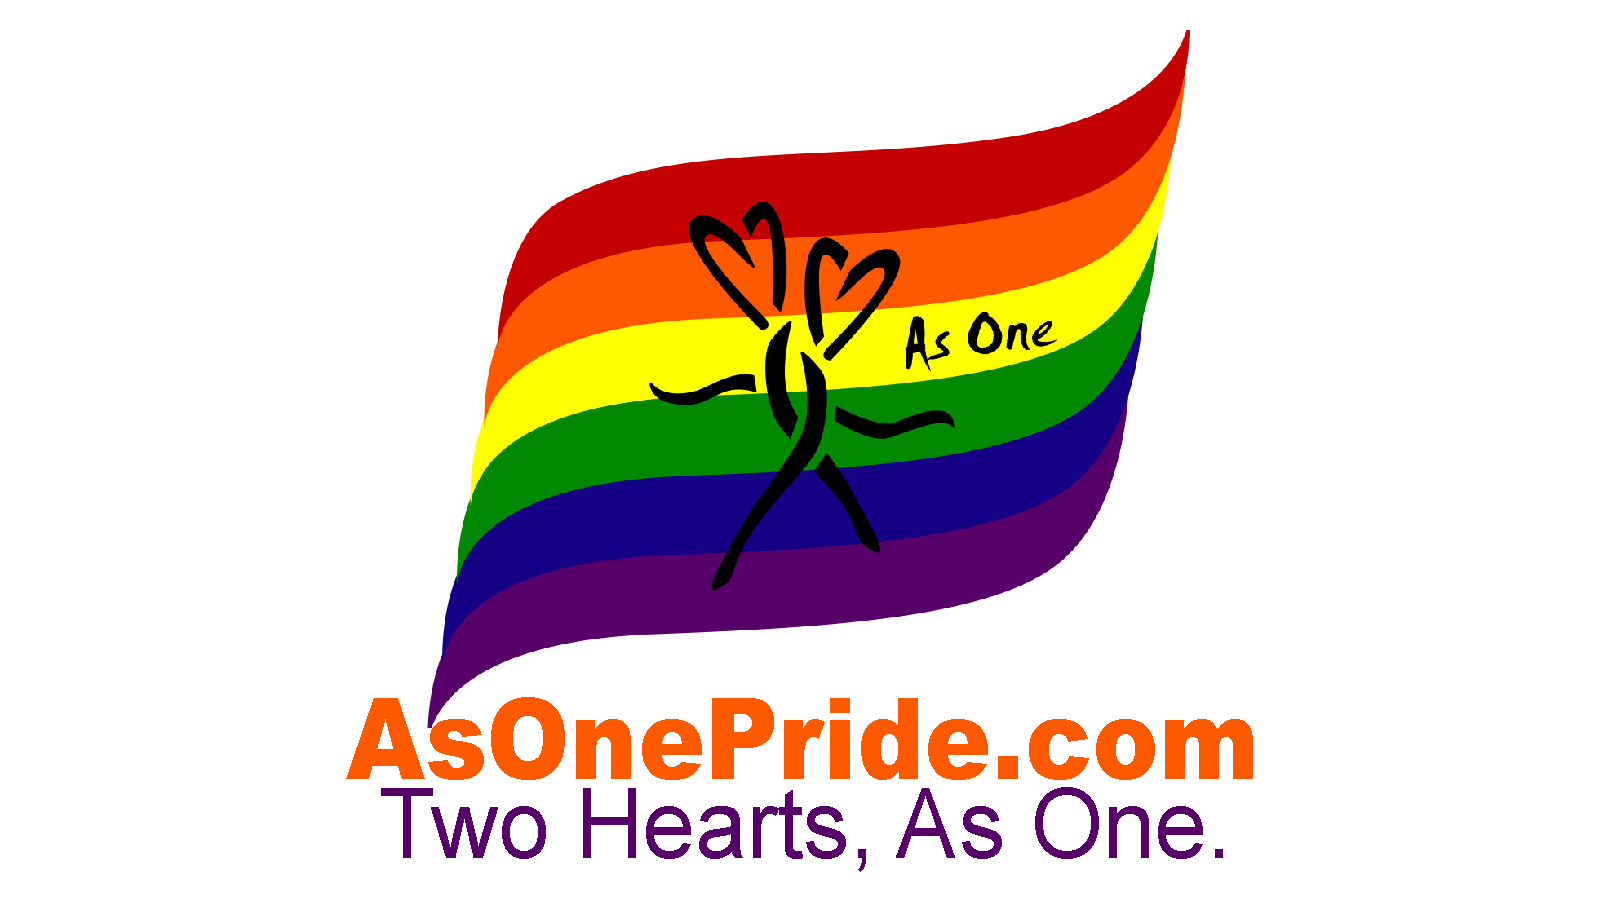 As One Pride